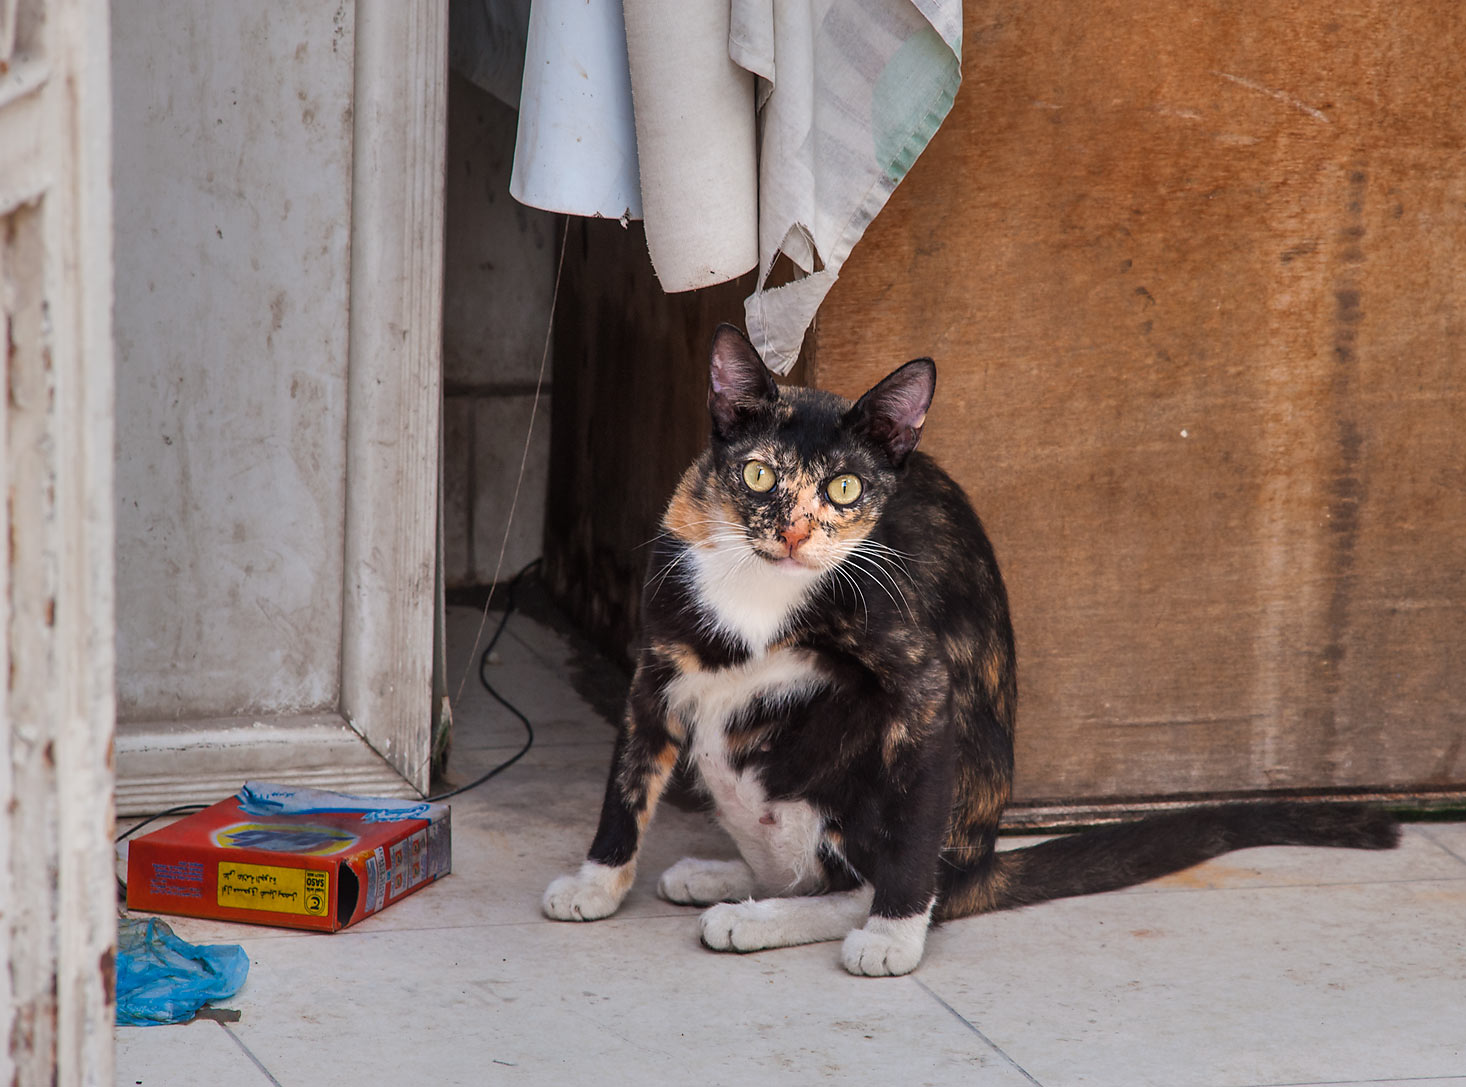 Peeking calico cat on Al Maymoun St. in Musheirib (Msheireb) area. Doha, Qatar